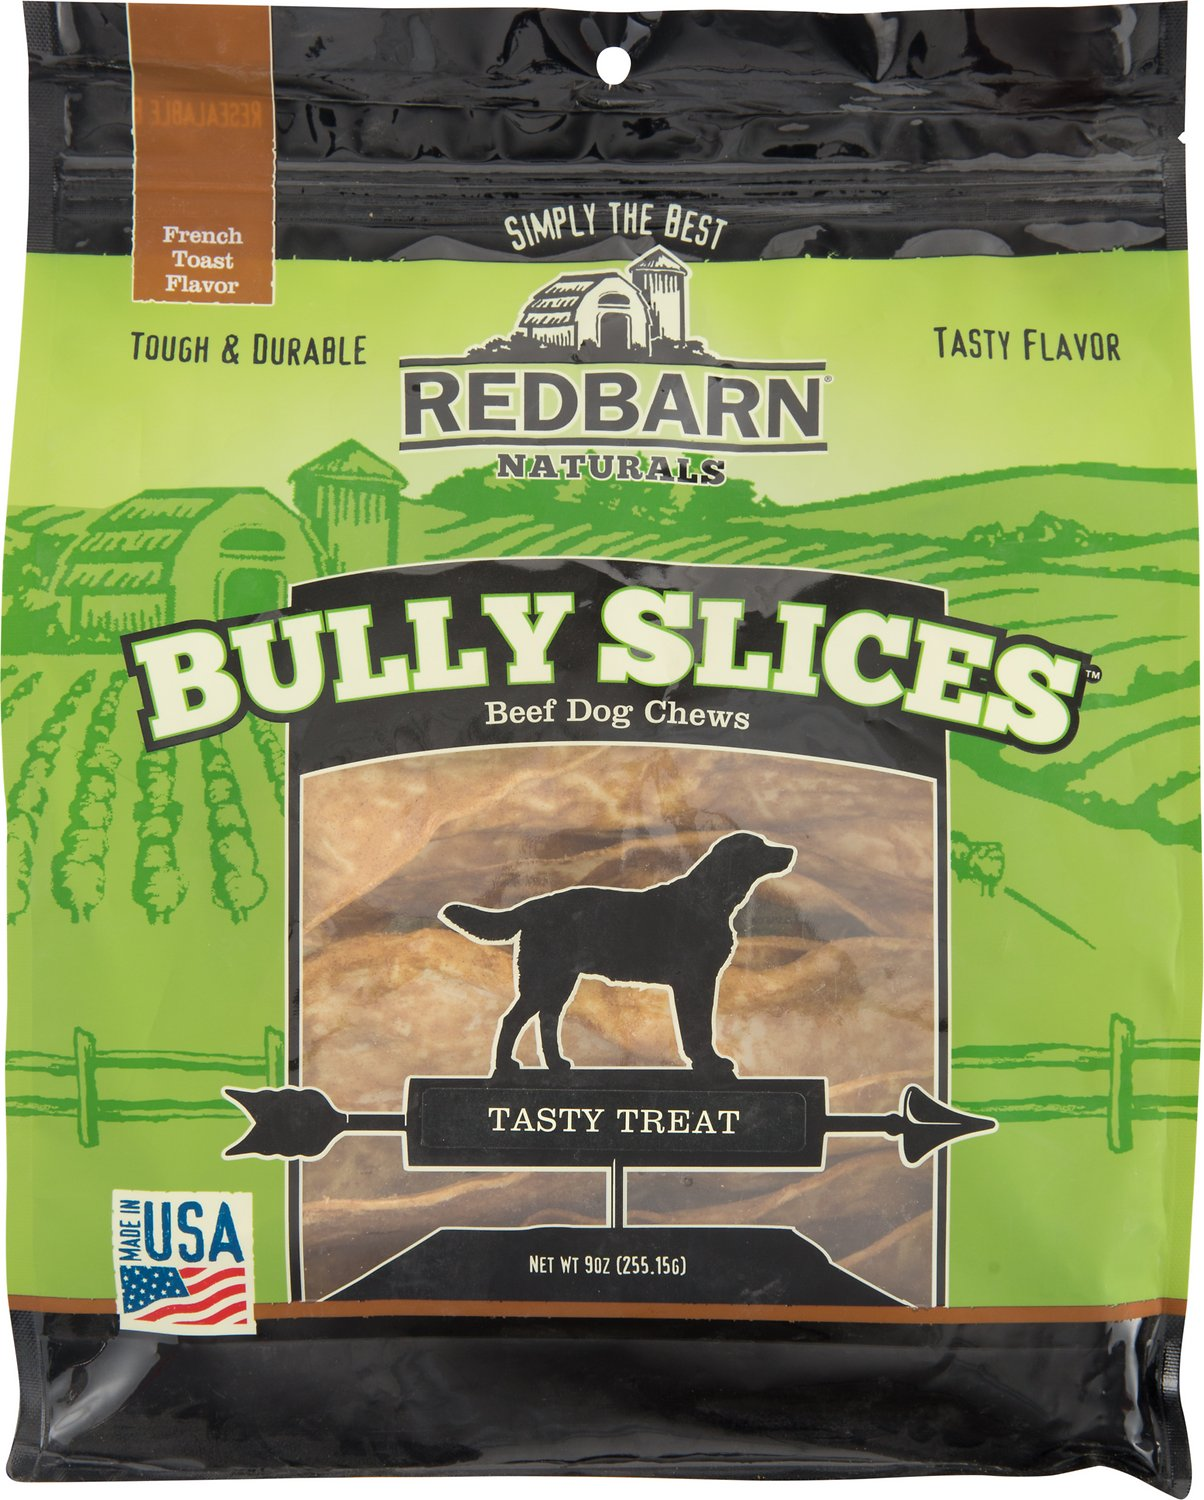 packaged red food bully stick barns barn sticks com dog braided whitedogbone treat treats inch may